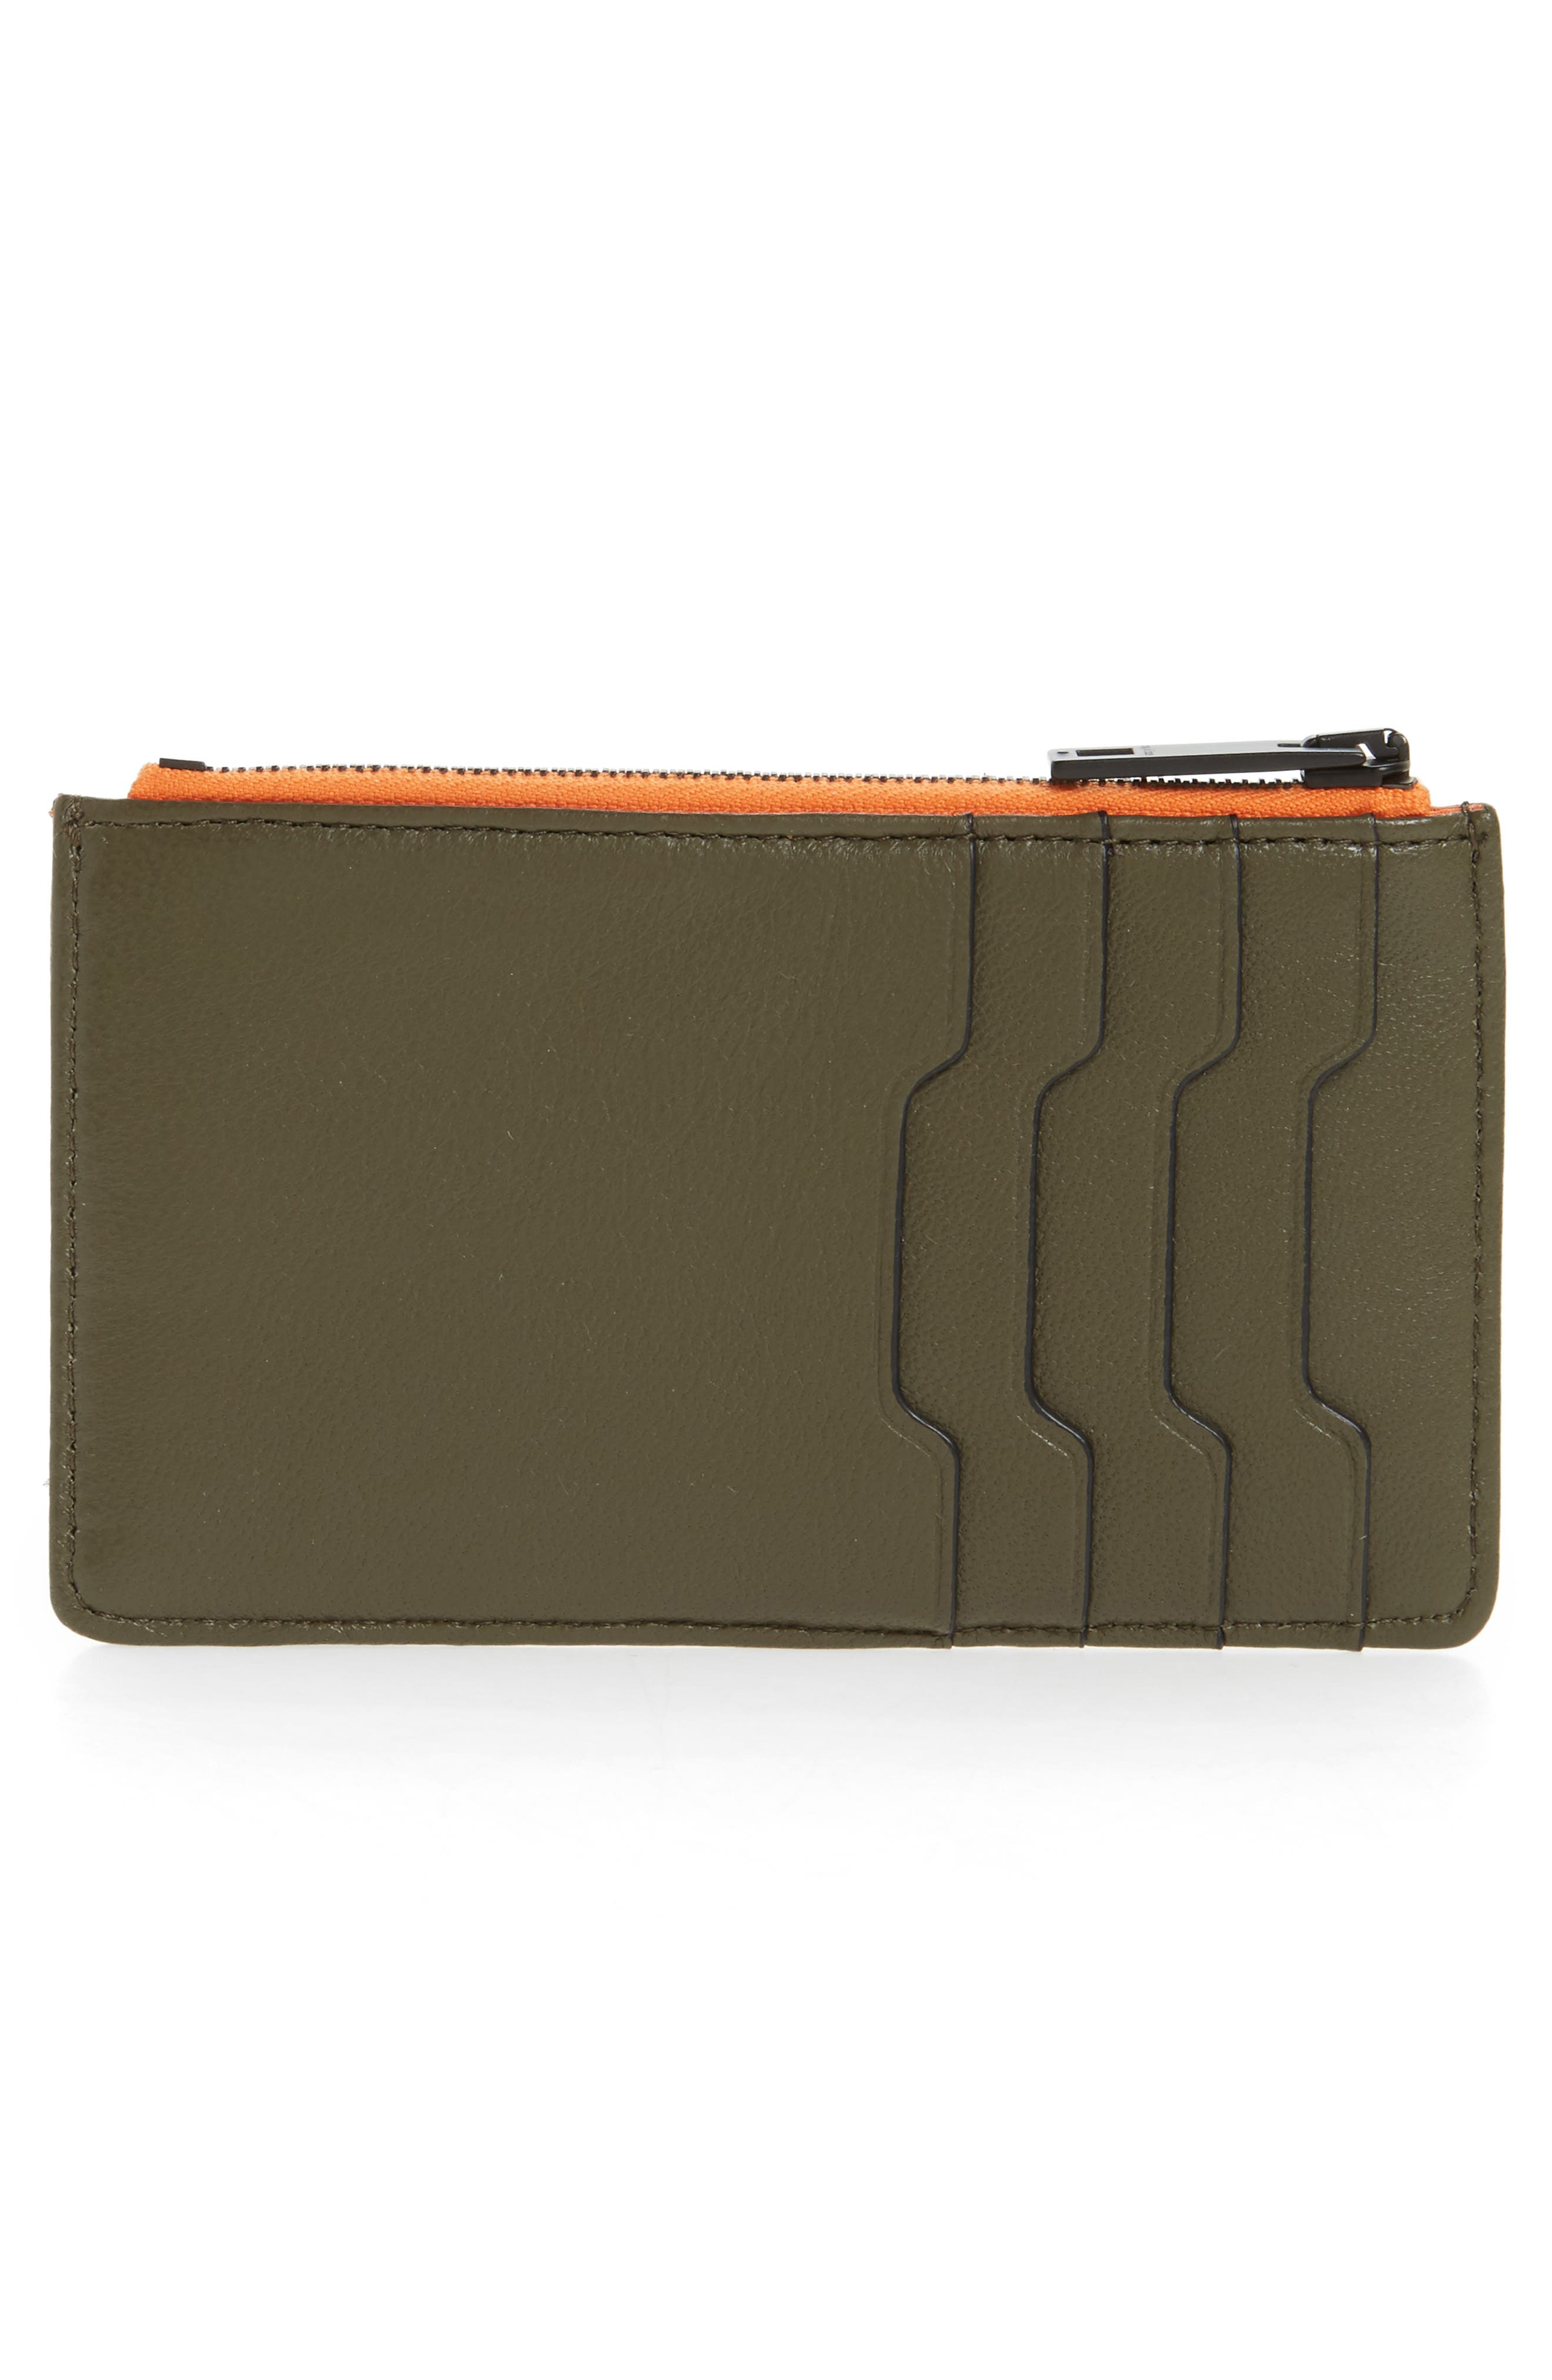 Dot Dash Quilted Leather Card Case,                             Alternate thumbnail 3, color,                             388